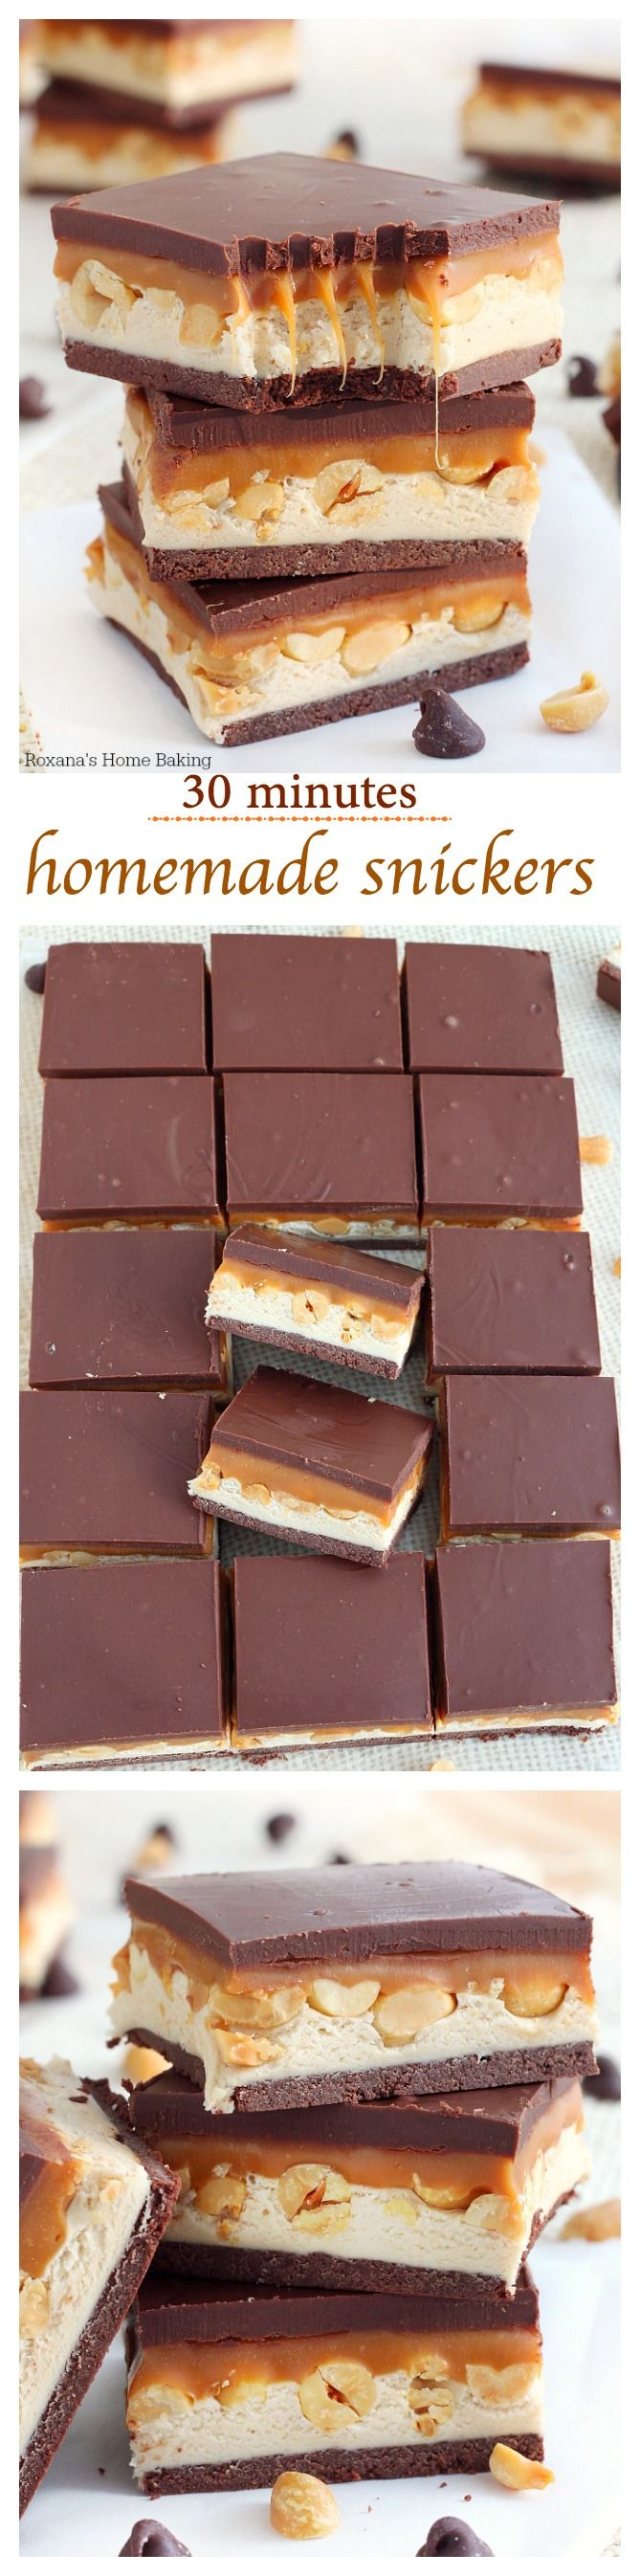 Nougat, peanuts and caramel sandwiched between two chocolate layers